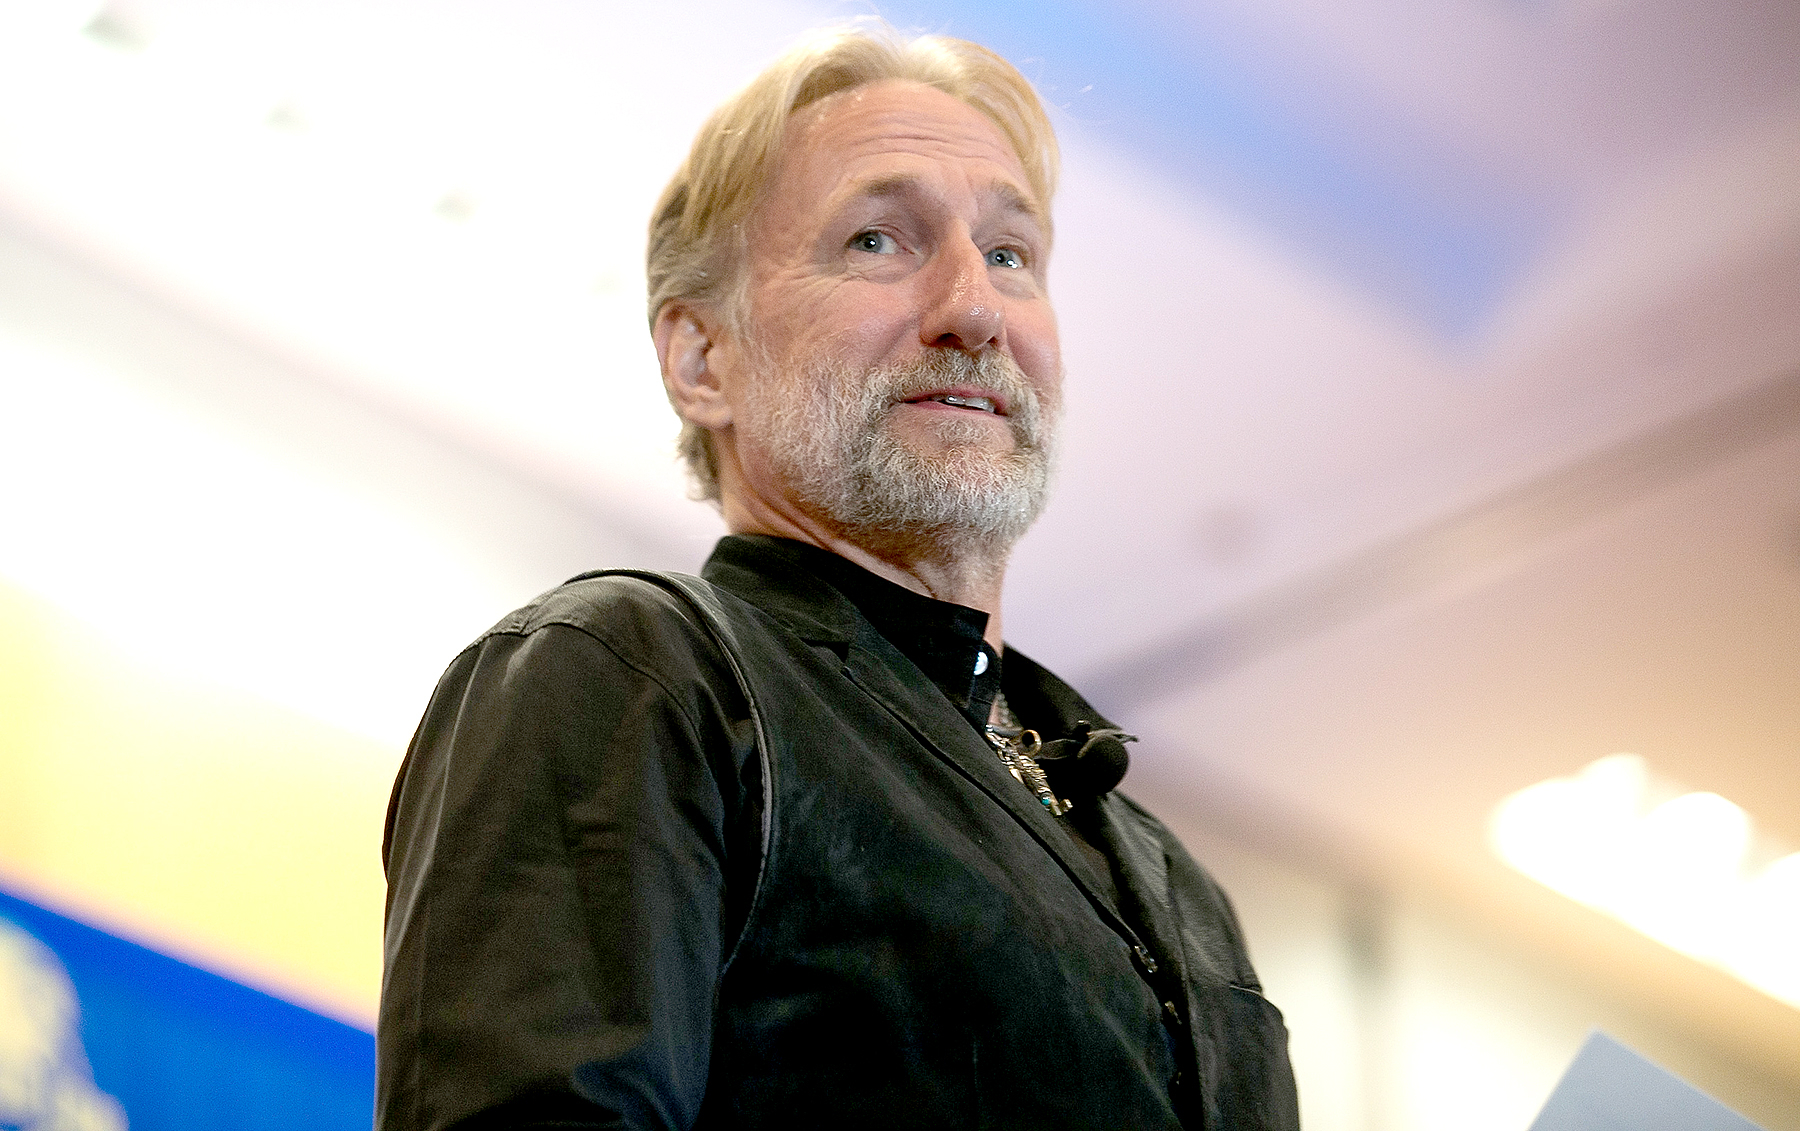 Brian Henson presents a panel on muppet performance at Dragon Con on September 2, 2016 in Atlanta, Georgia.